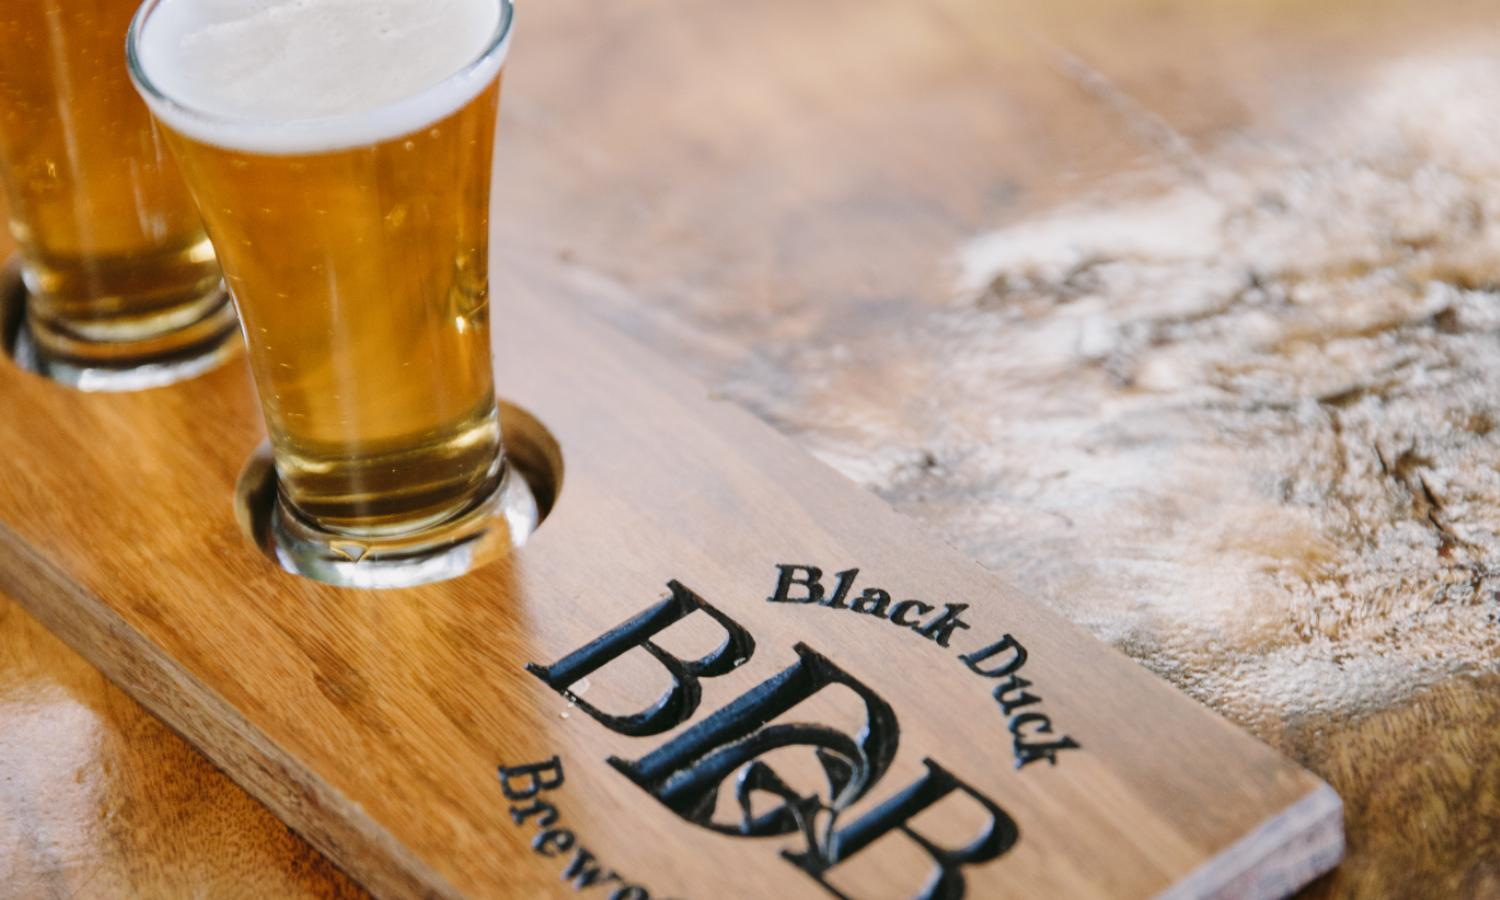 Black Duck Brewery